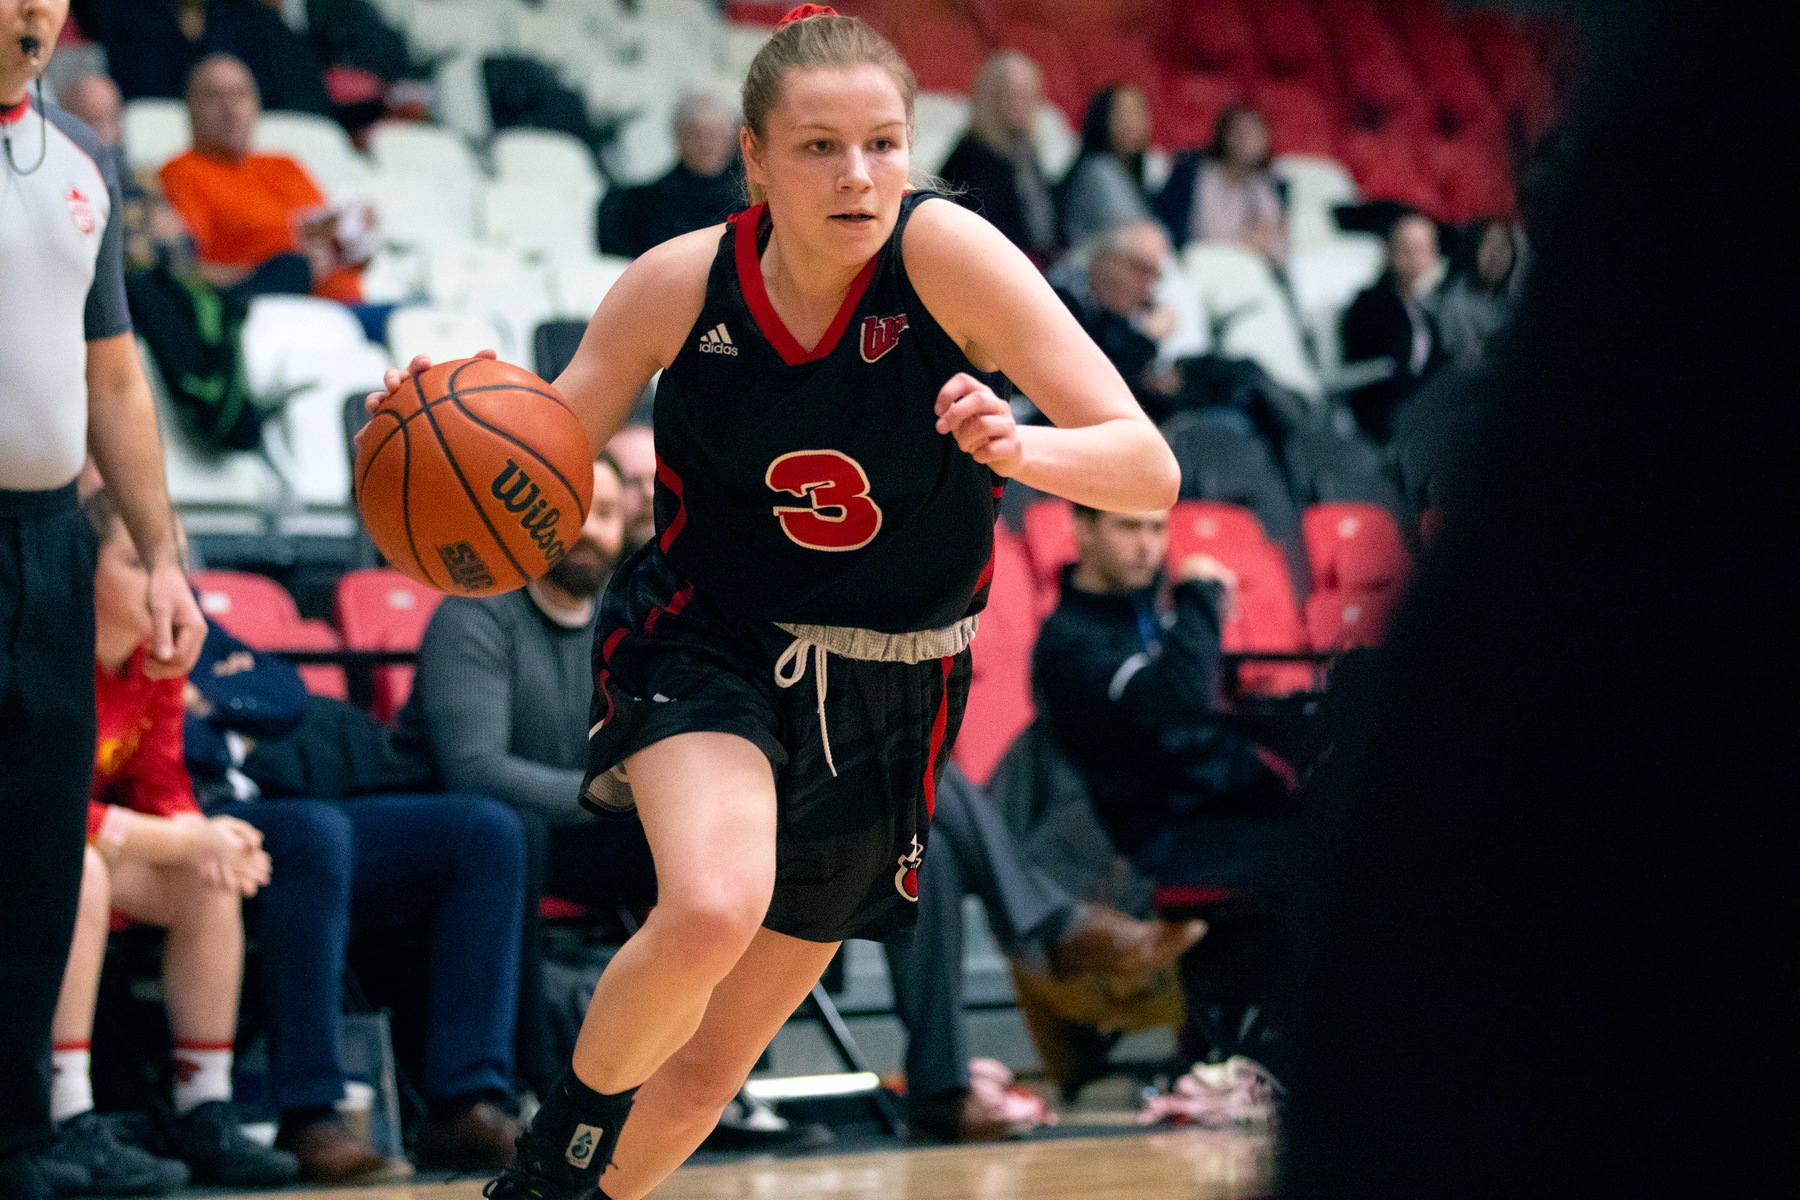 Anna Kernaghan had 18 points Saturday night in a loss to the UBC Thunderbirds. (David Larkins/Wesmen Athletics file)